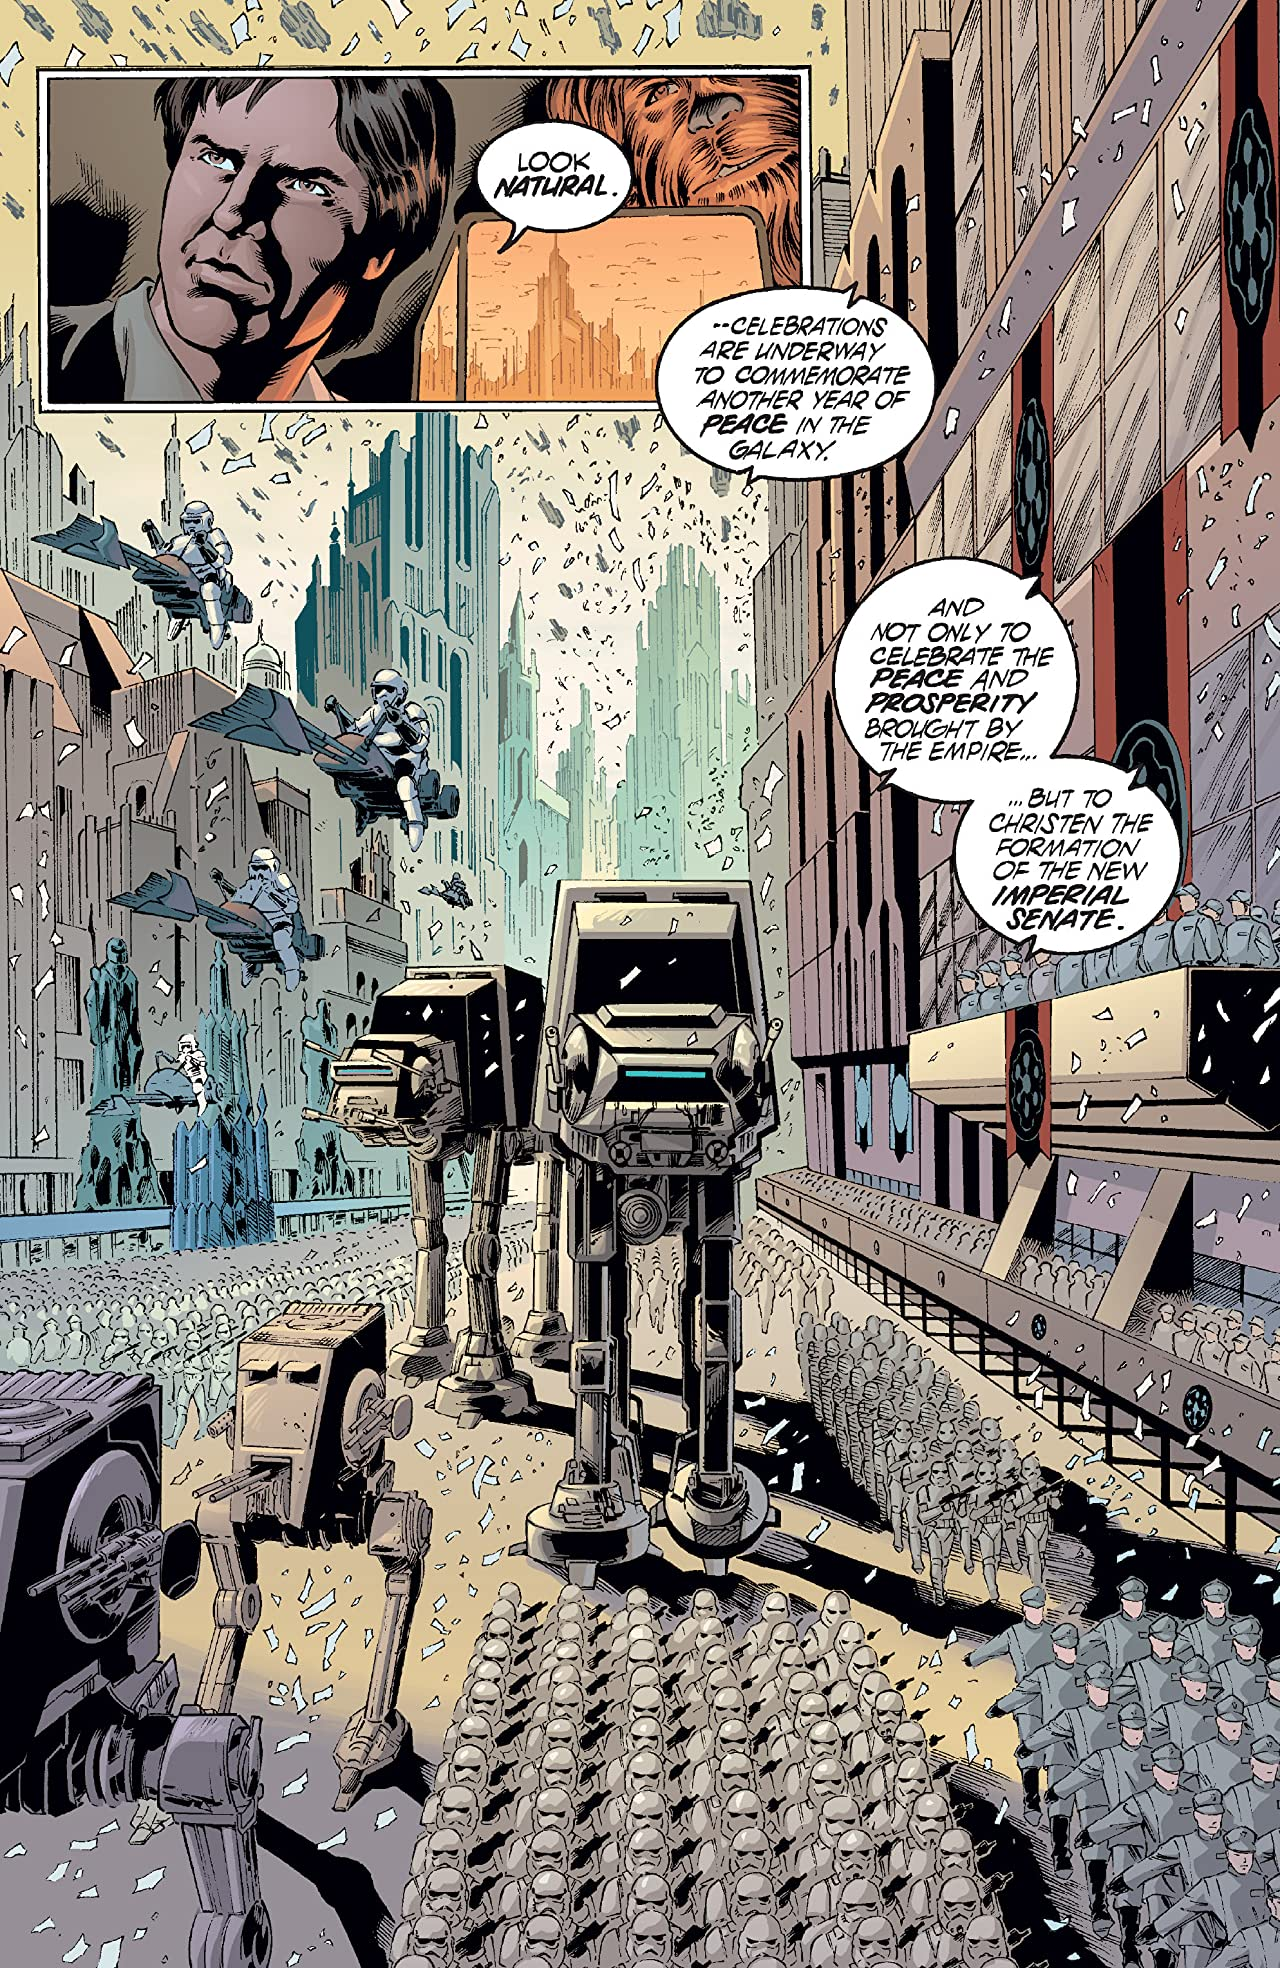 Star Wars Infinities: A New Hope #3 (of 4)